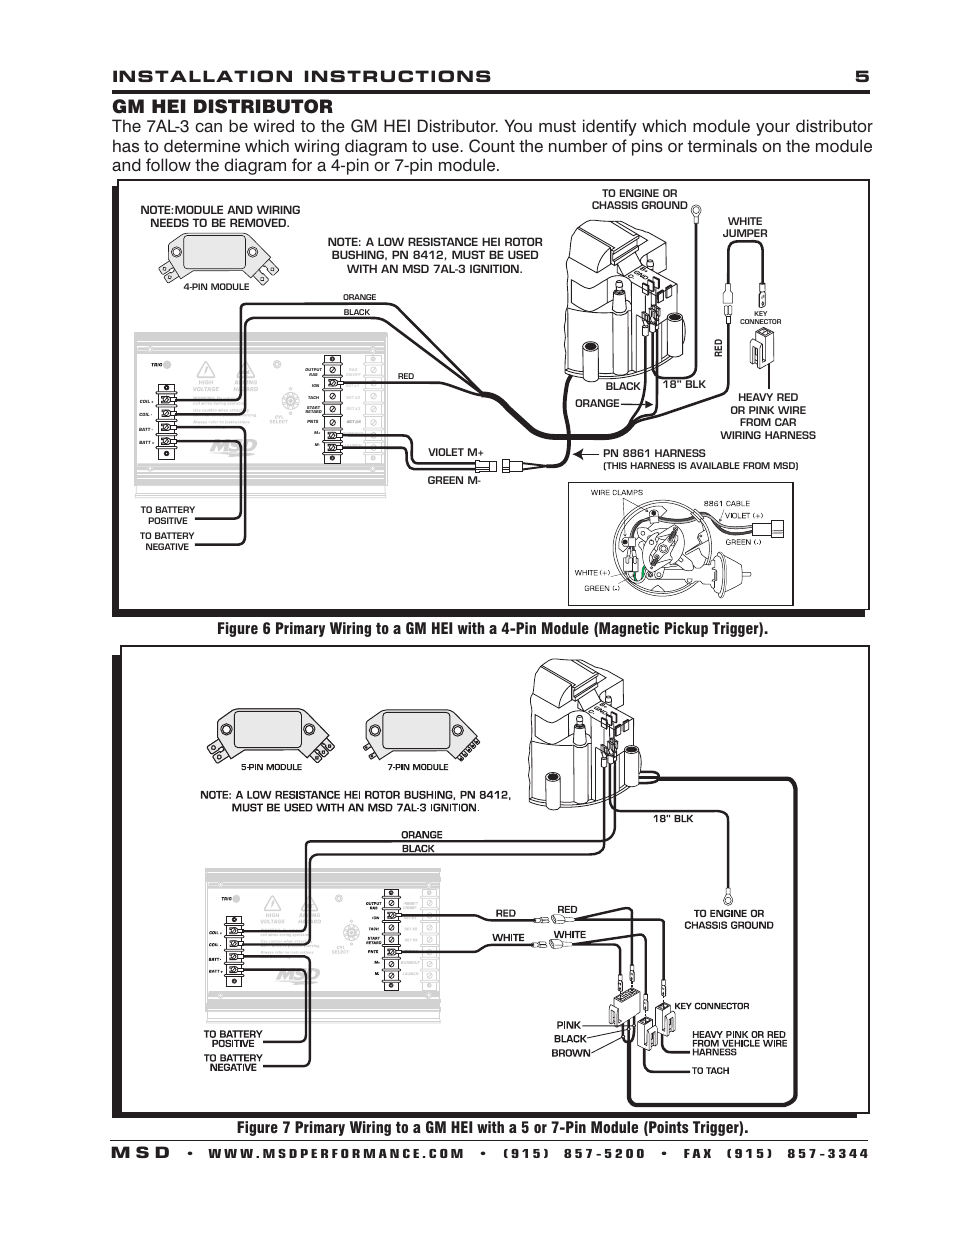 msd 7330 7al 3 ignition control installation page5?resize\\\\\\\=665%2C861 crane hi 6 wiring diagram crane cams hi 6 wiring diagram \u2022 wiring  at panicattacktreatment.co